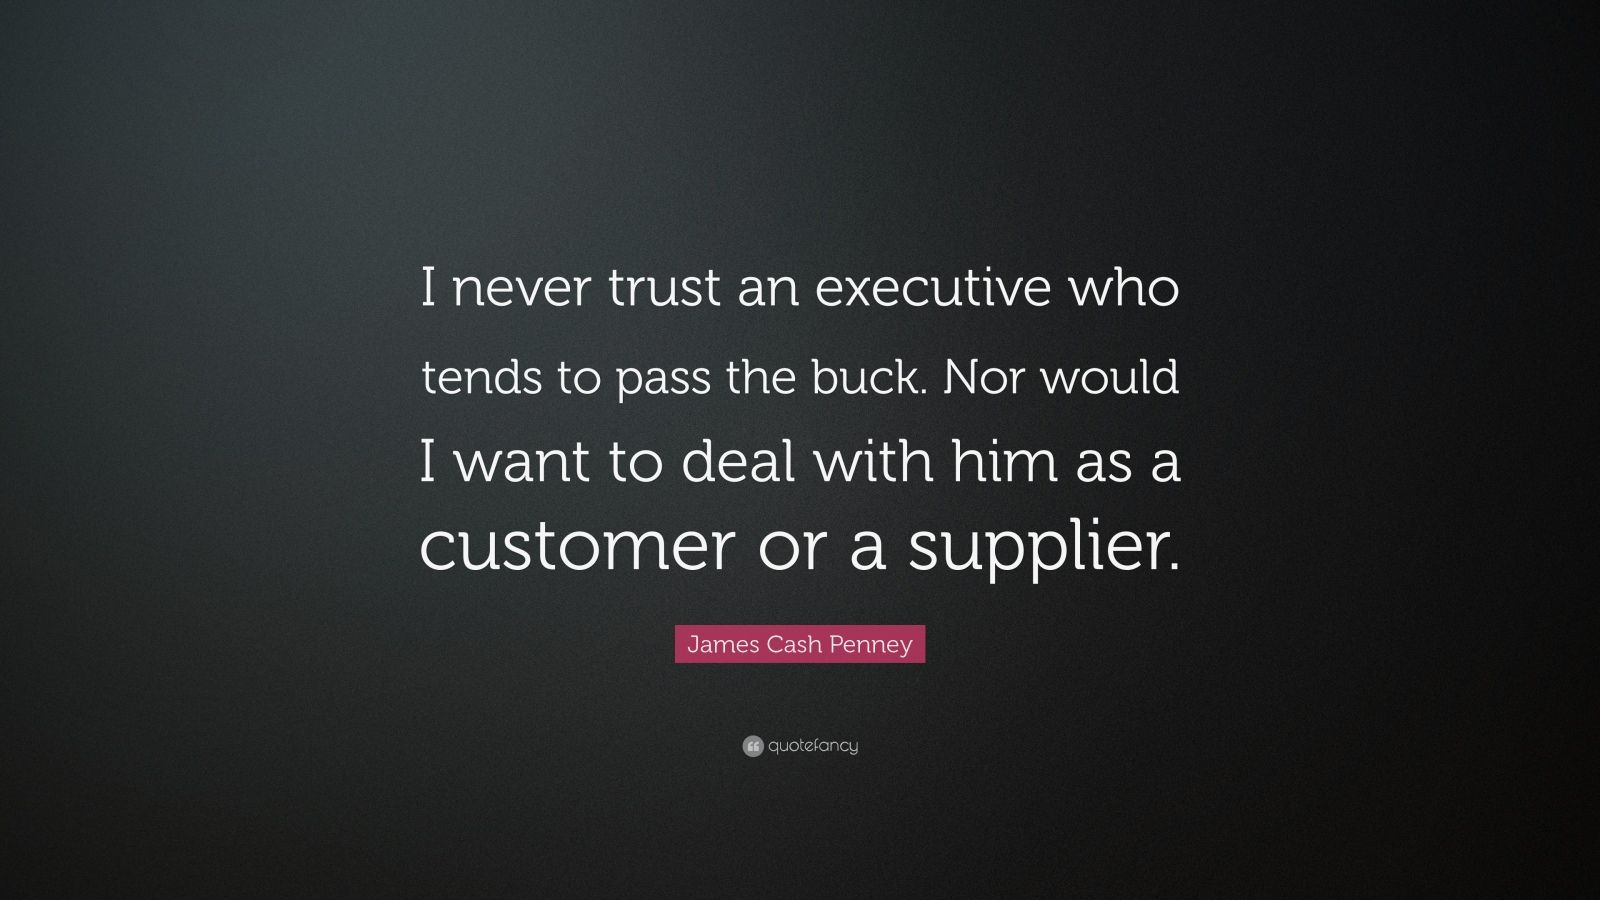 """James Cash Penney Quote: """"I never trust an executive who tends to pass the buck. Nor would I want to deal with him as a customer or a supplier."""""""